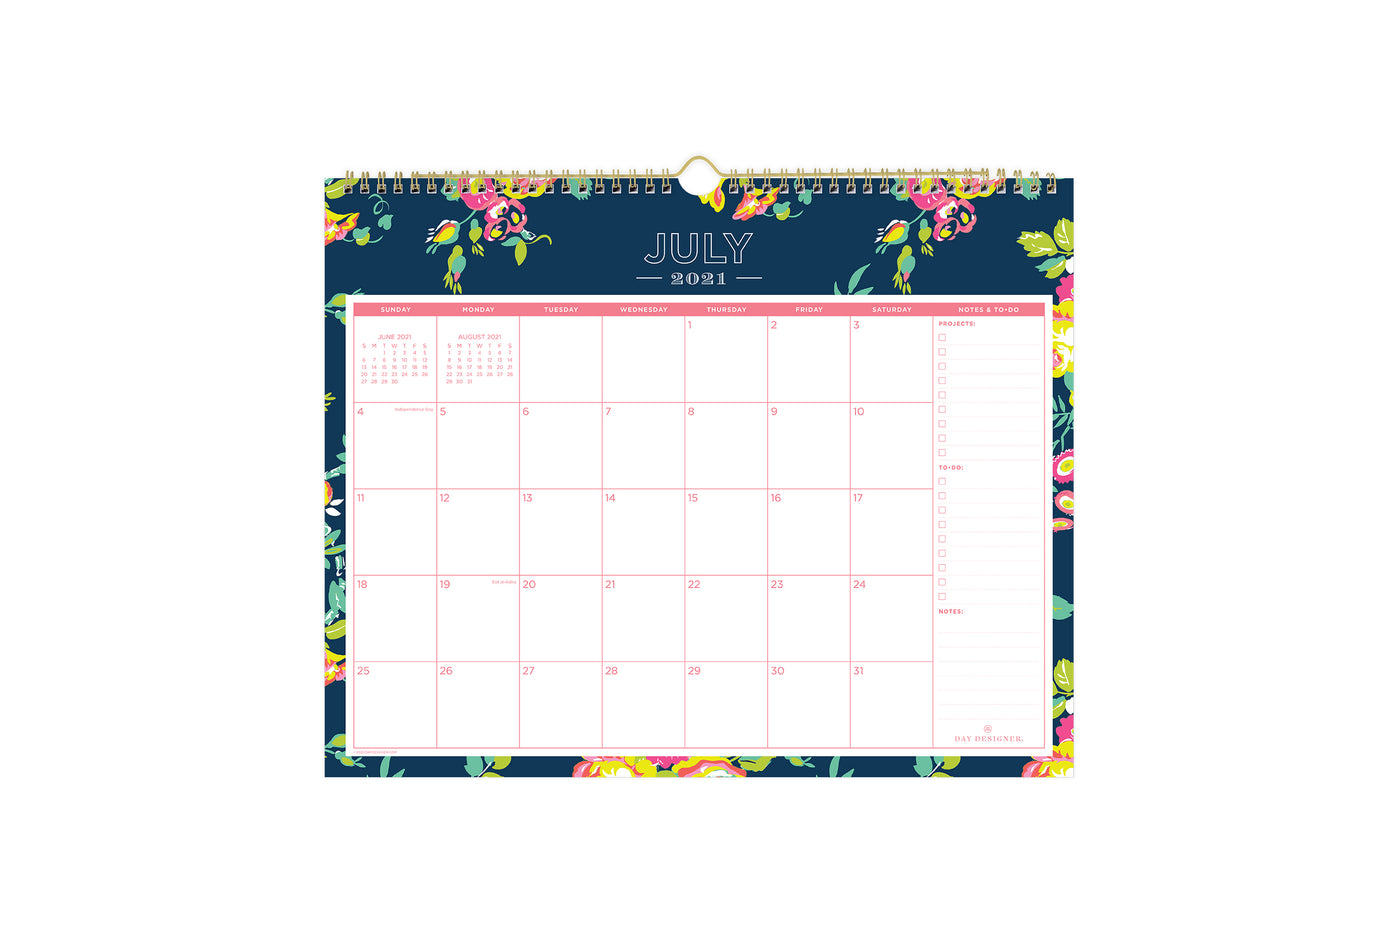 2021-2022 academic wall calendar for school year from Day Designer for Blue Sky in a white background, floral pink pattern and monthly view layout